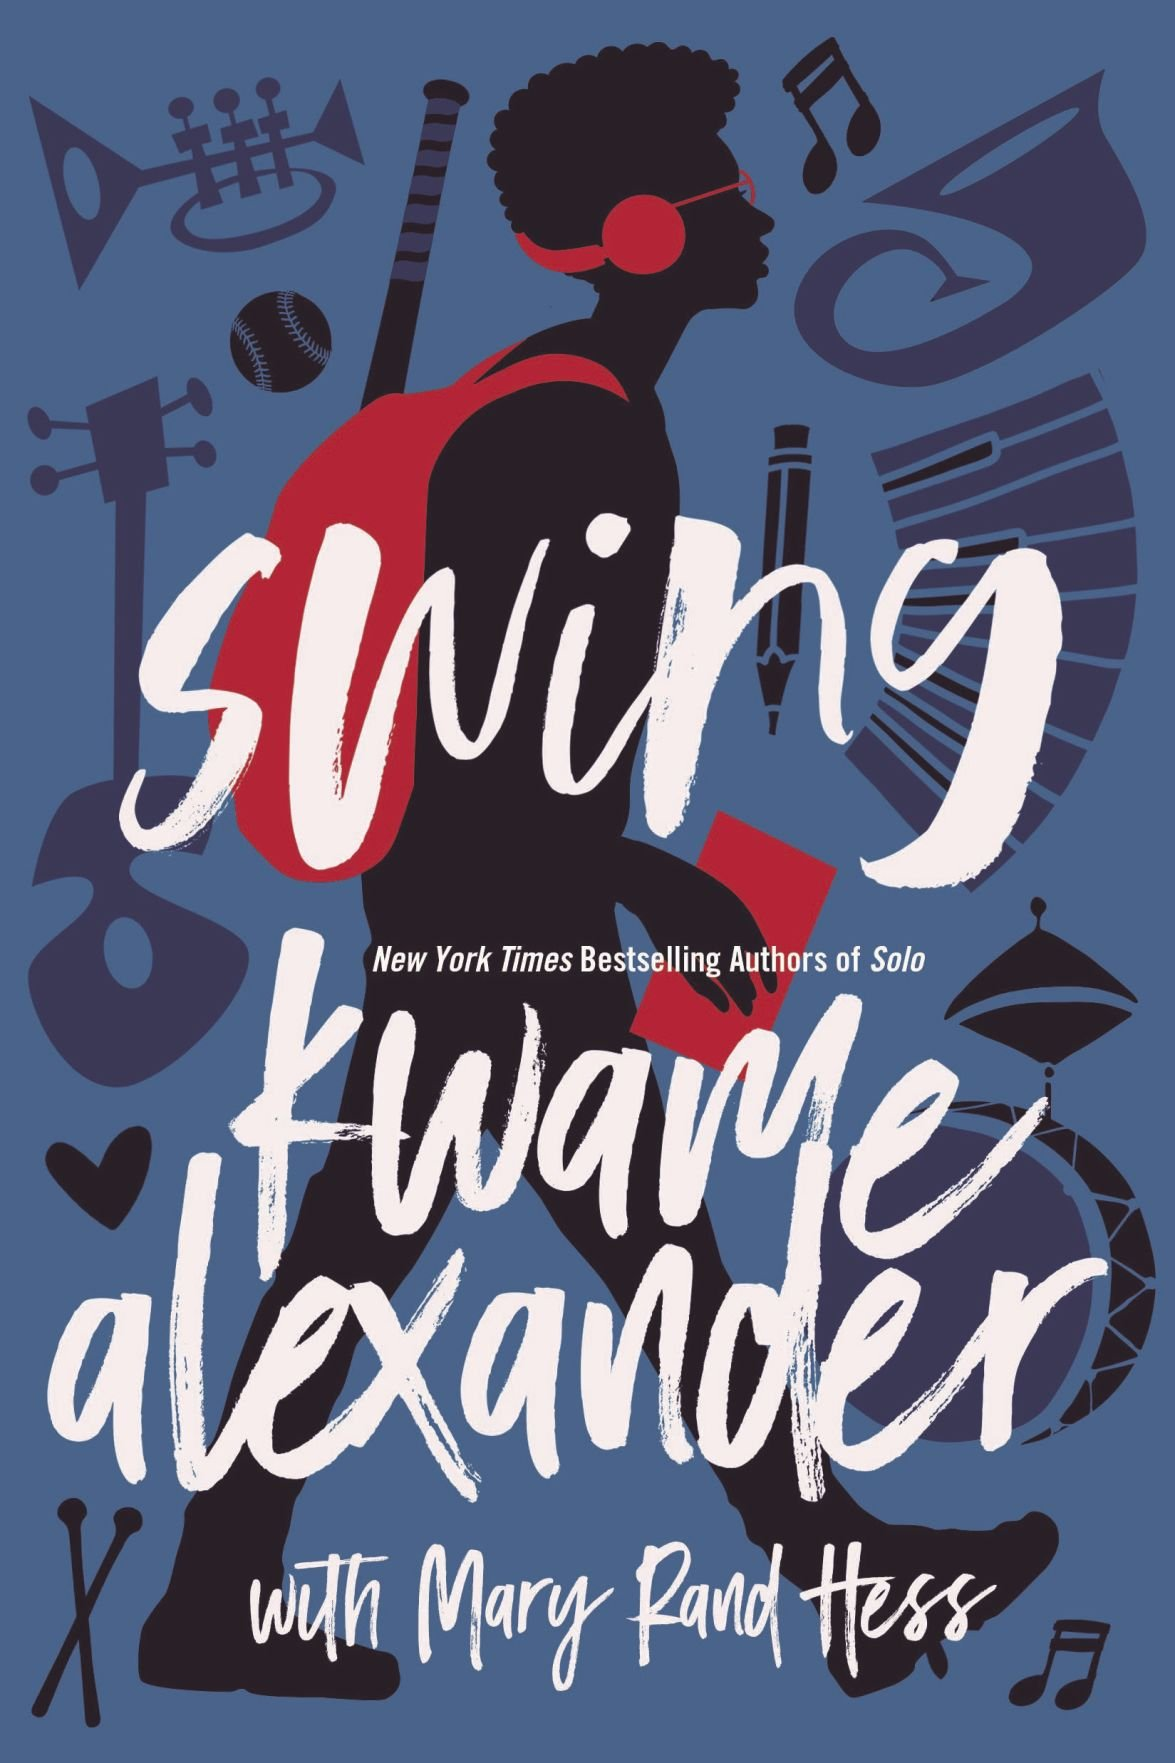 'Swing' by Kwame Alexander